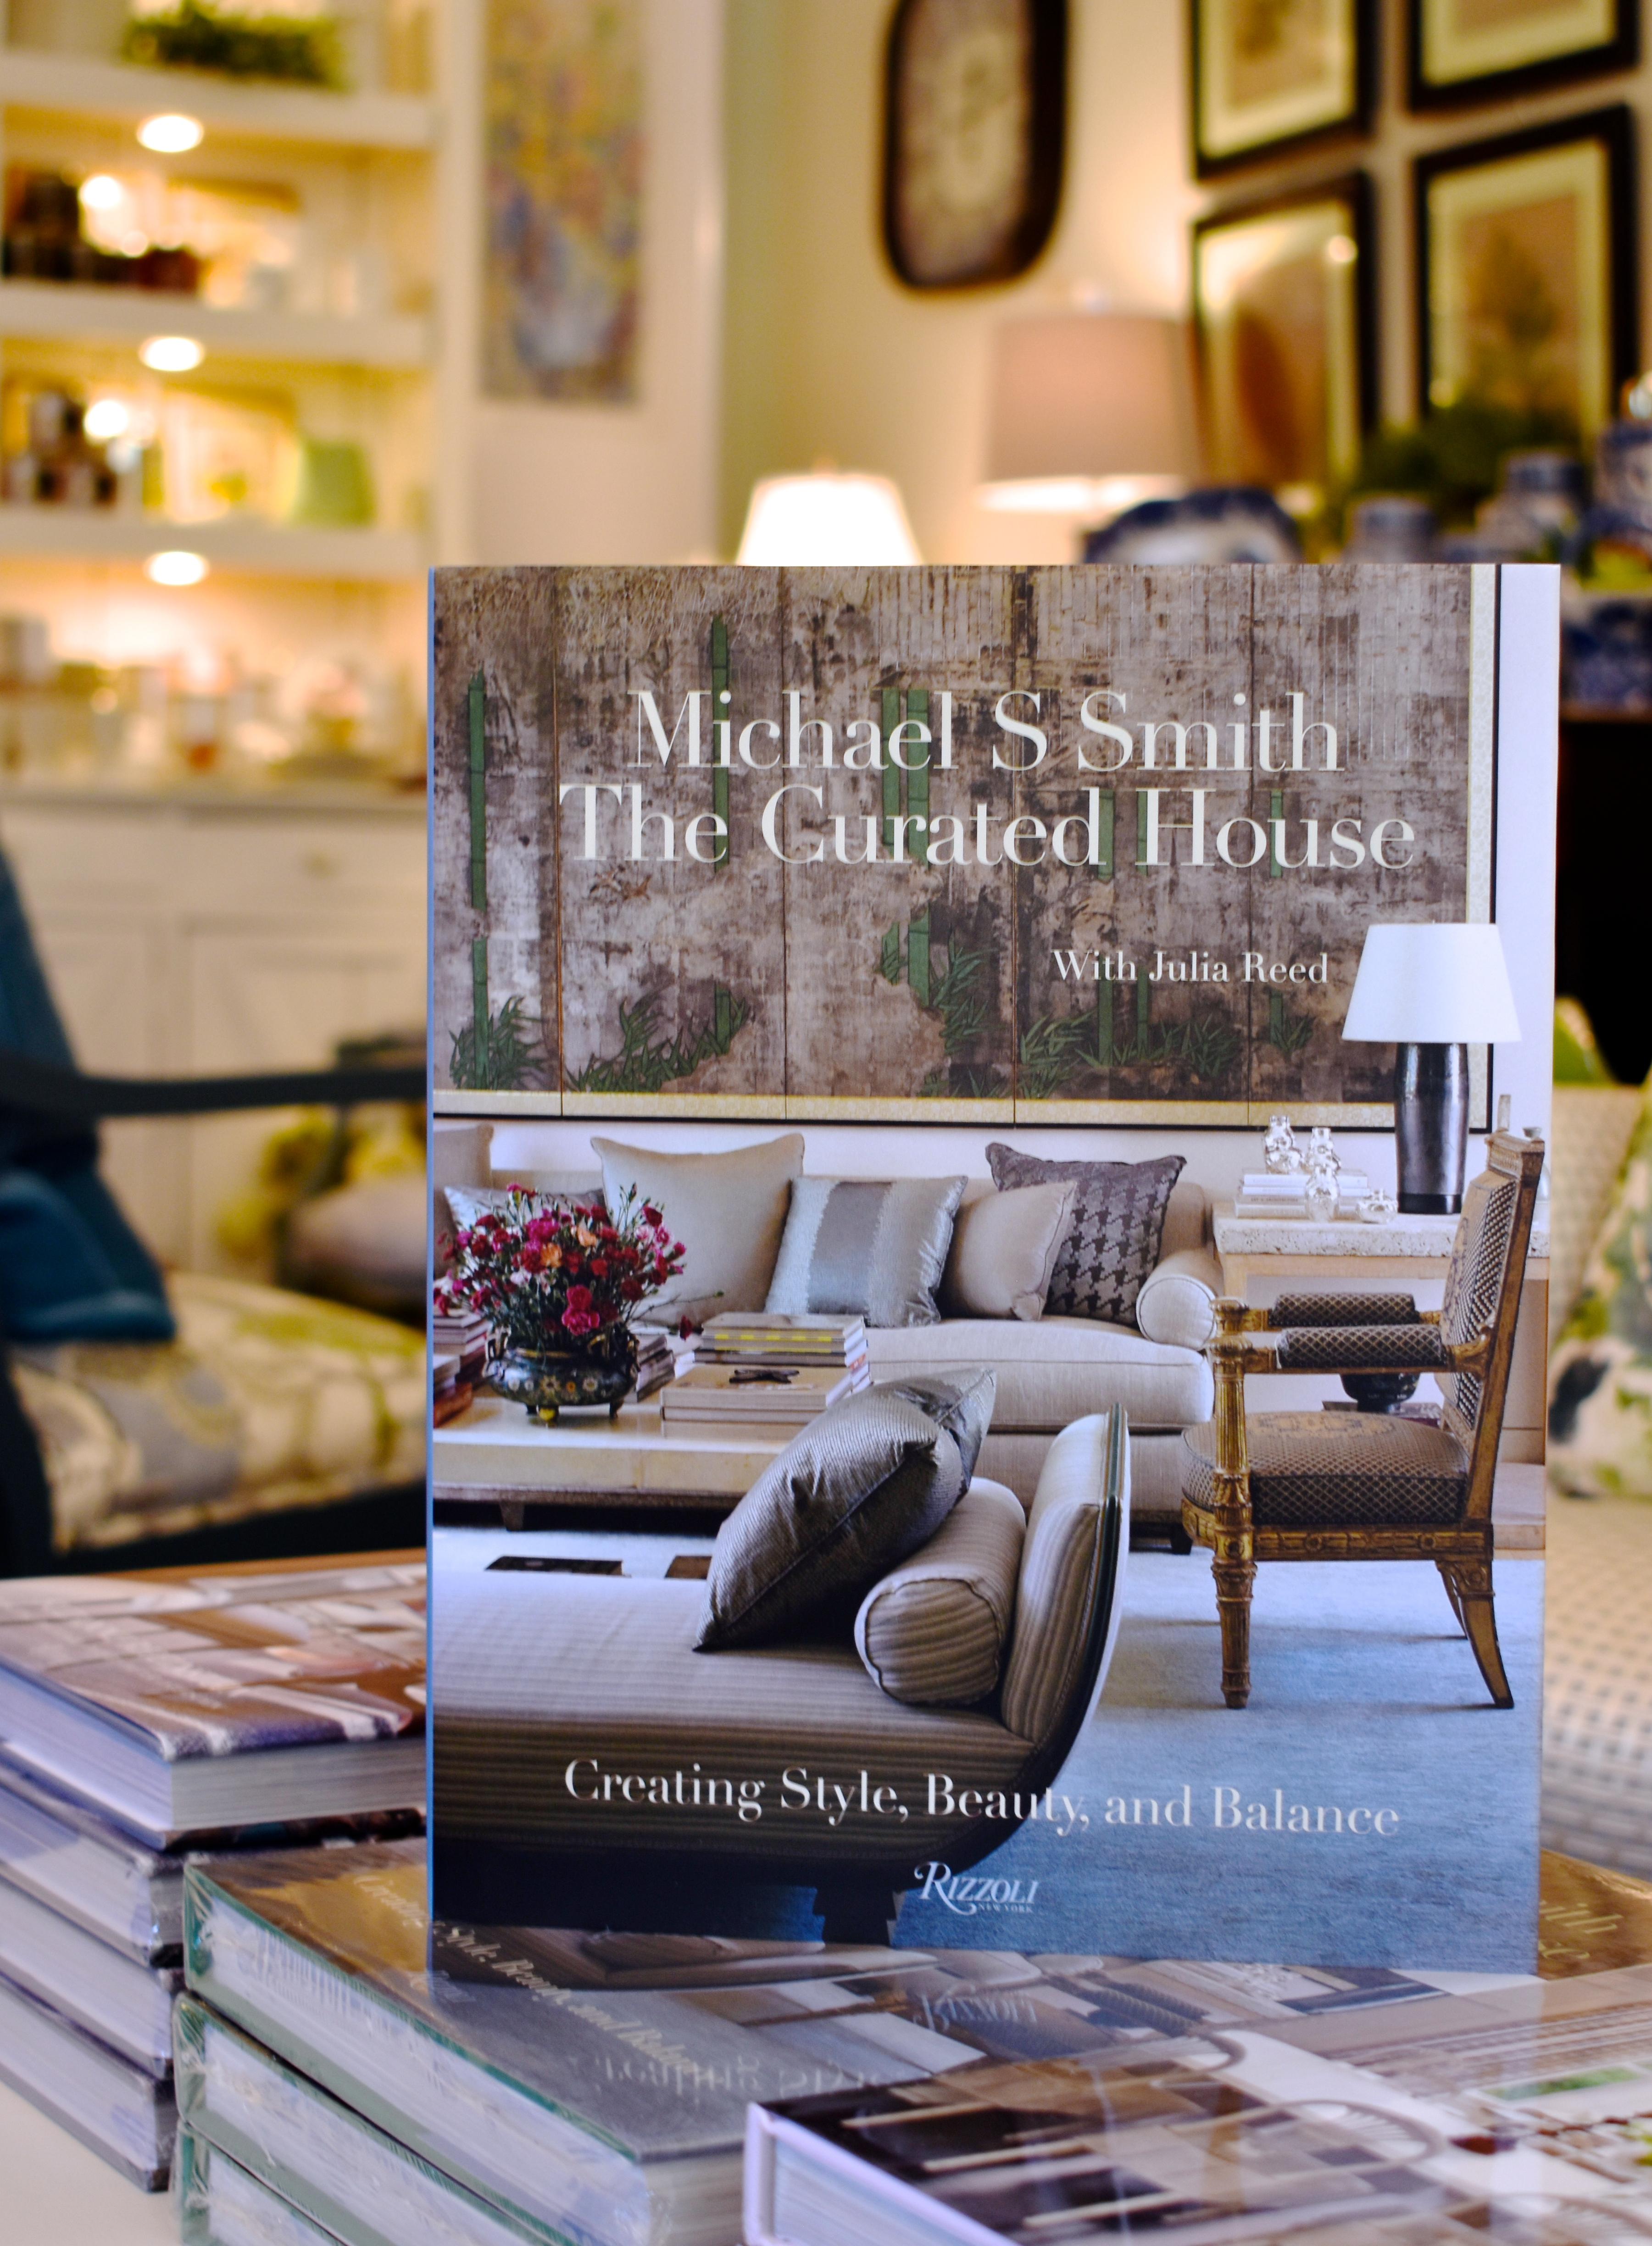 The Curated House